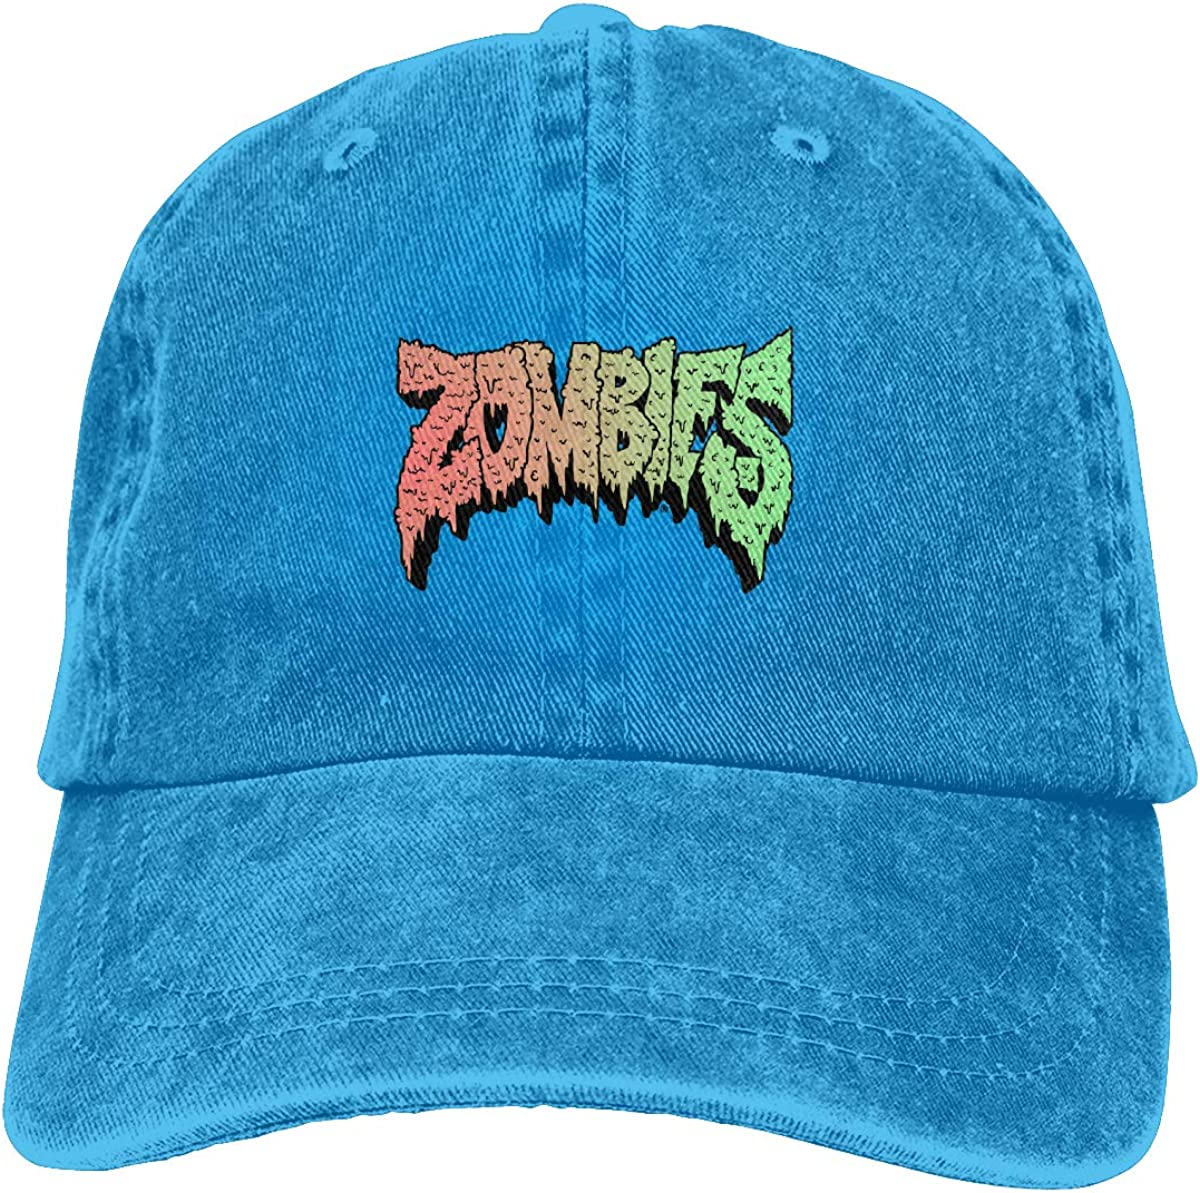 ORYISGAD Flatbush Zombies Sports Cap for Mens and Womens